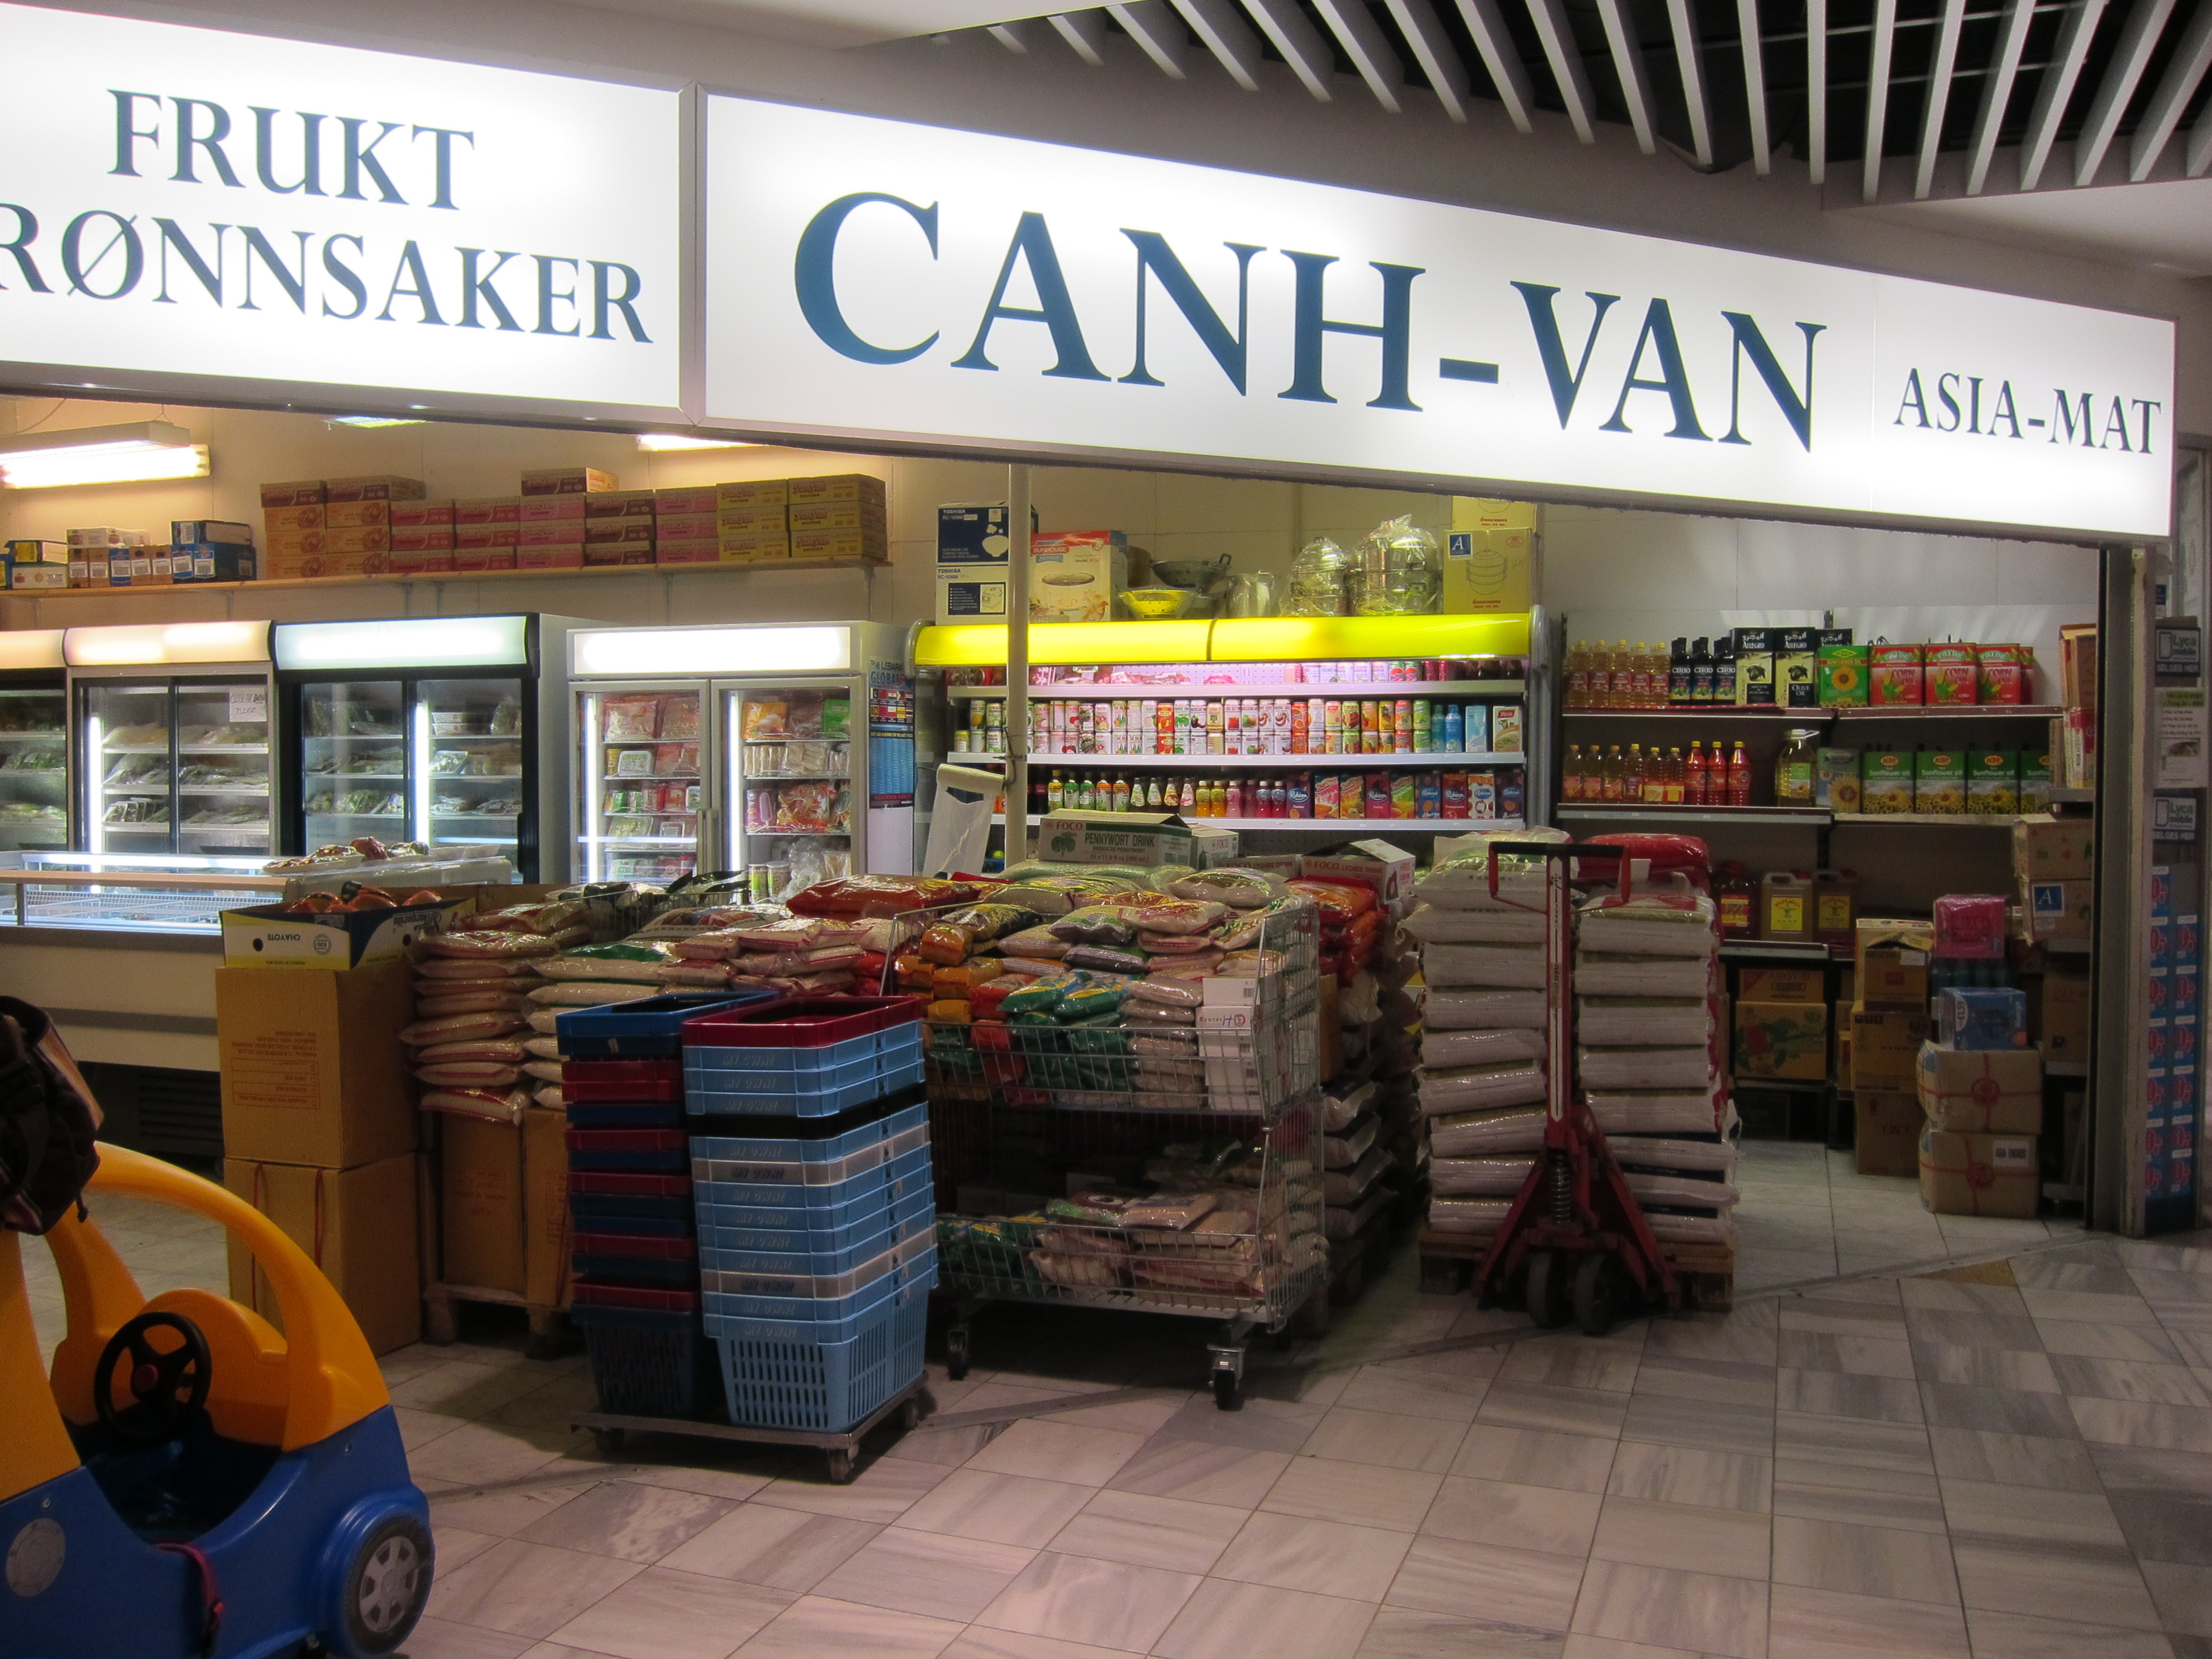 Canhvan Asiamat